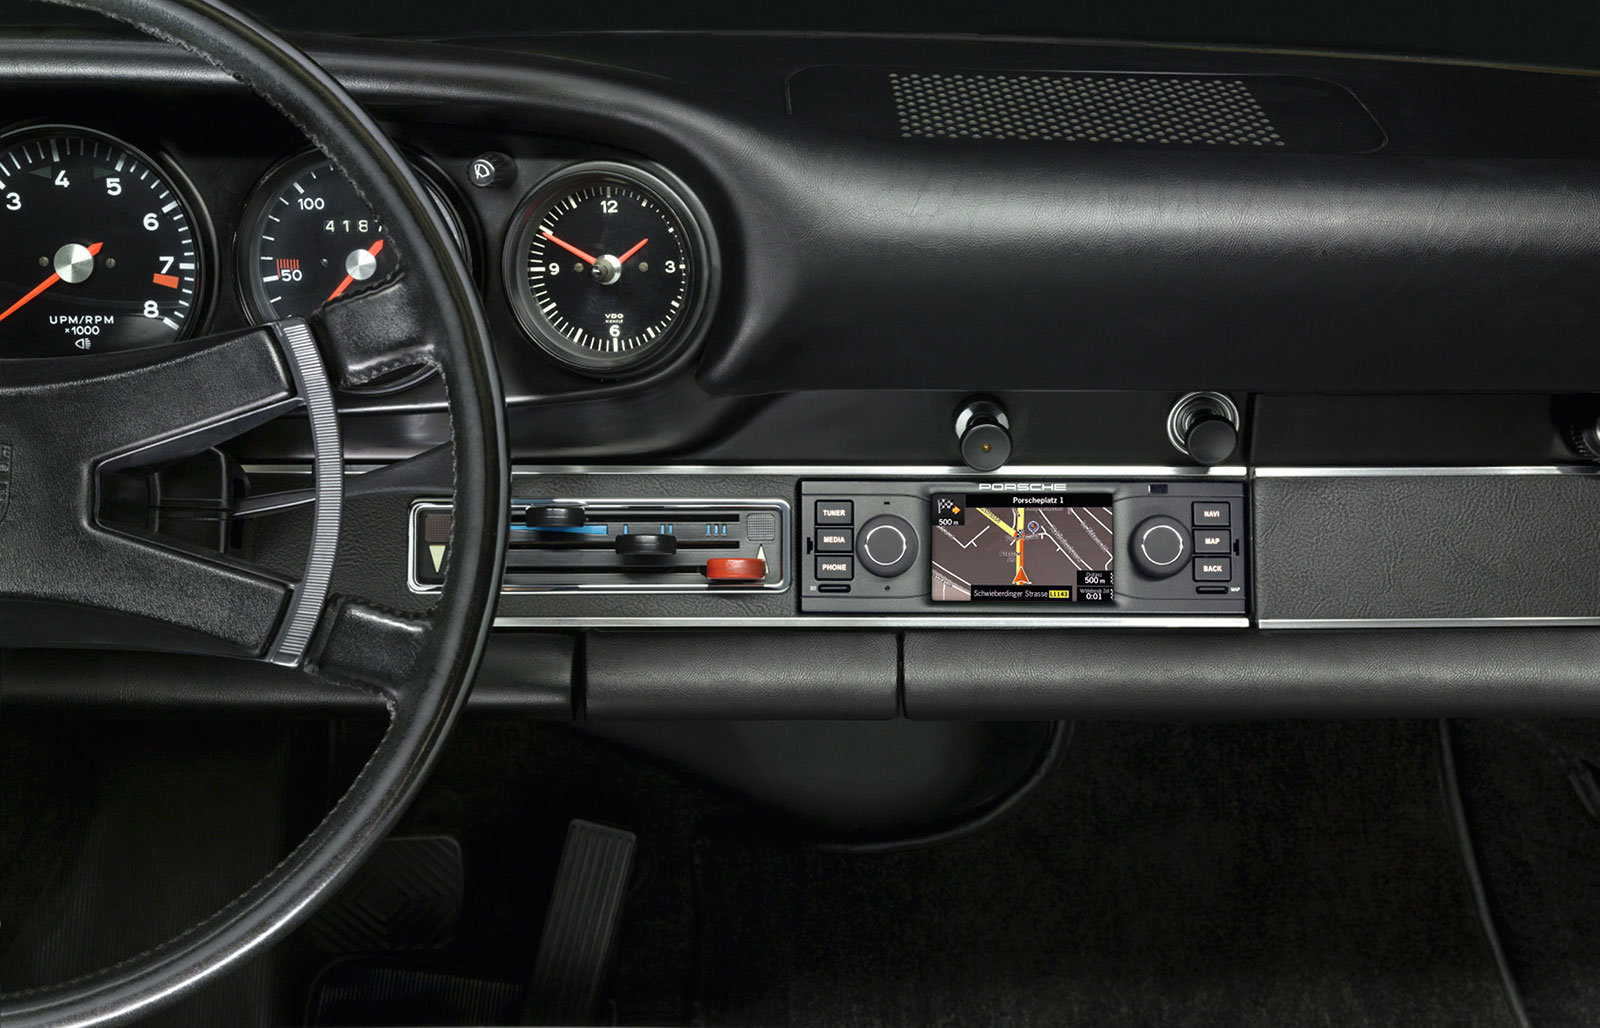 For the Porsche 911 - from 1960s-to mid 1990s sports cars